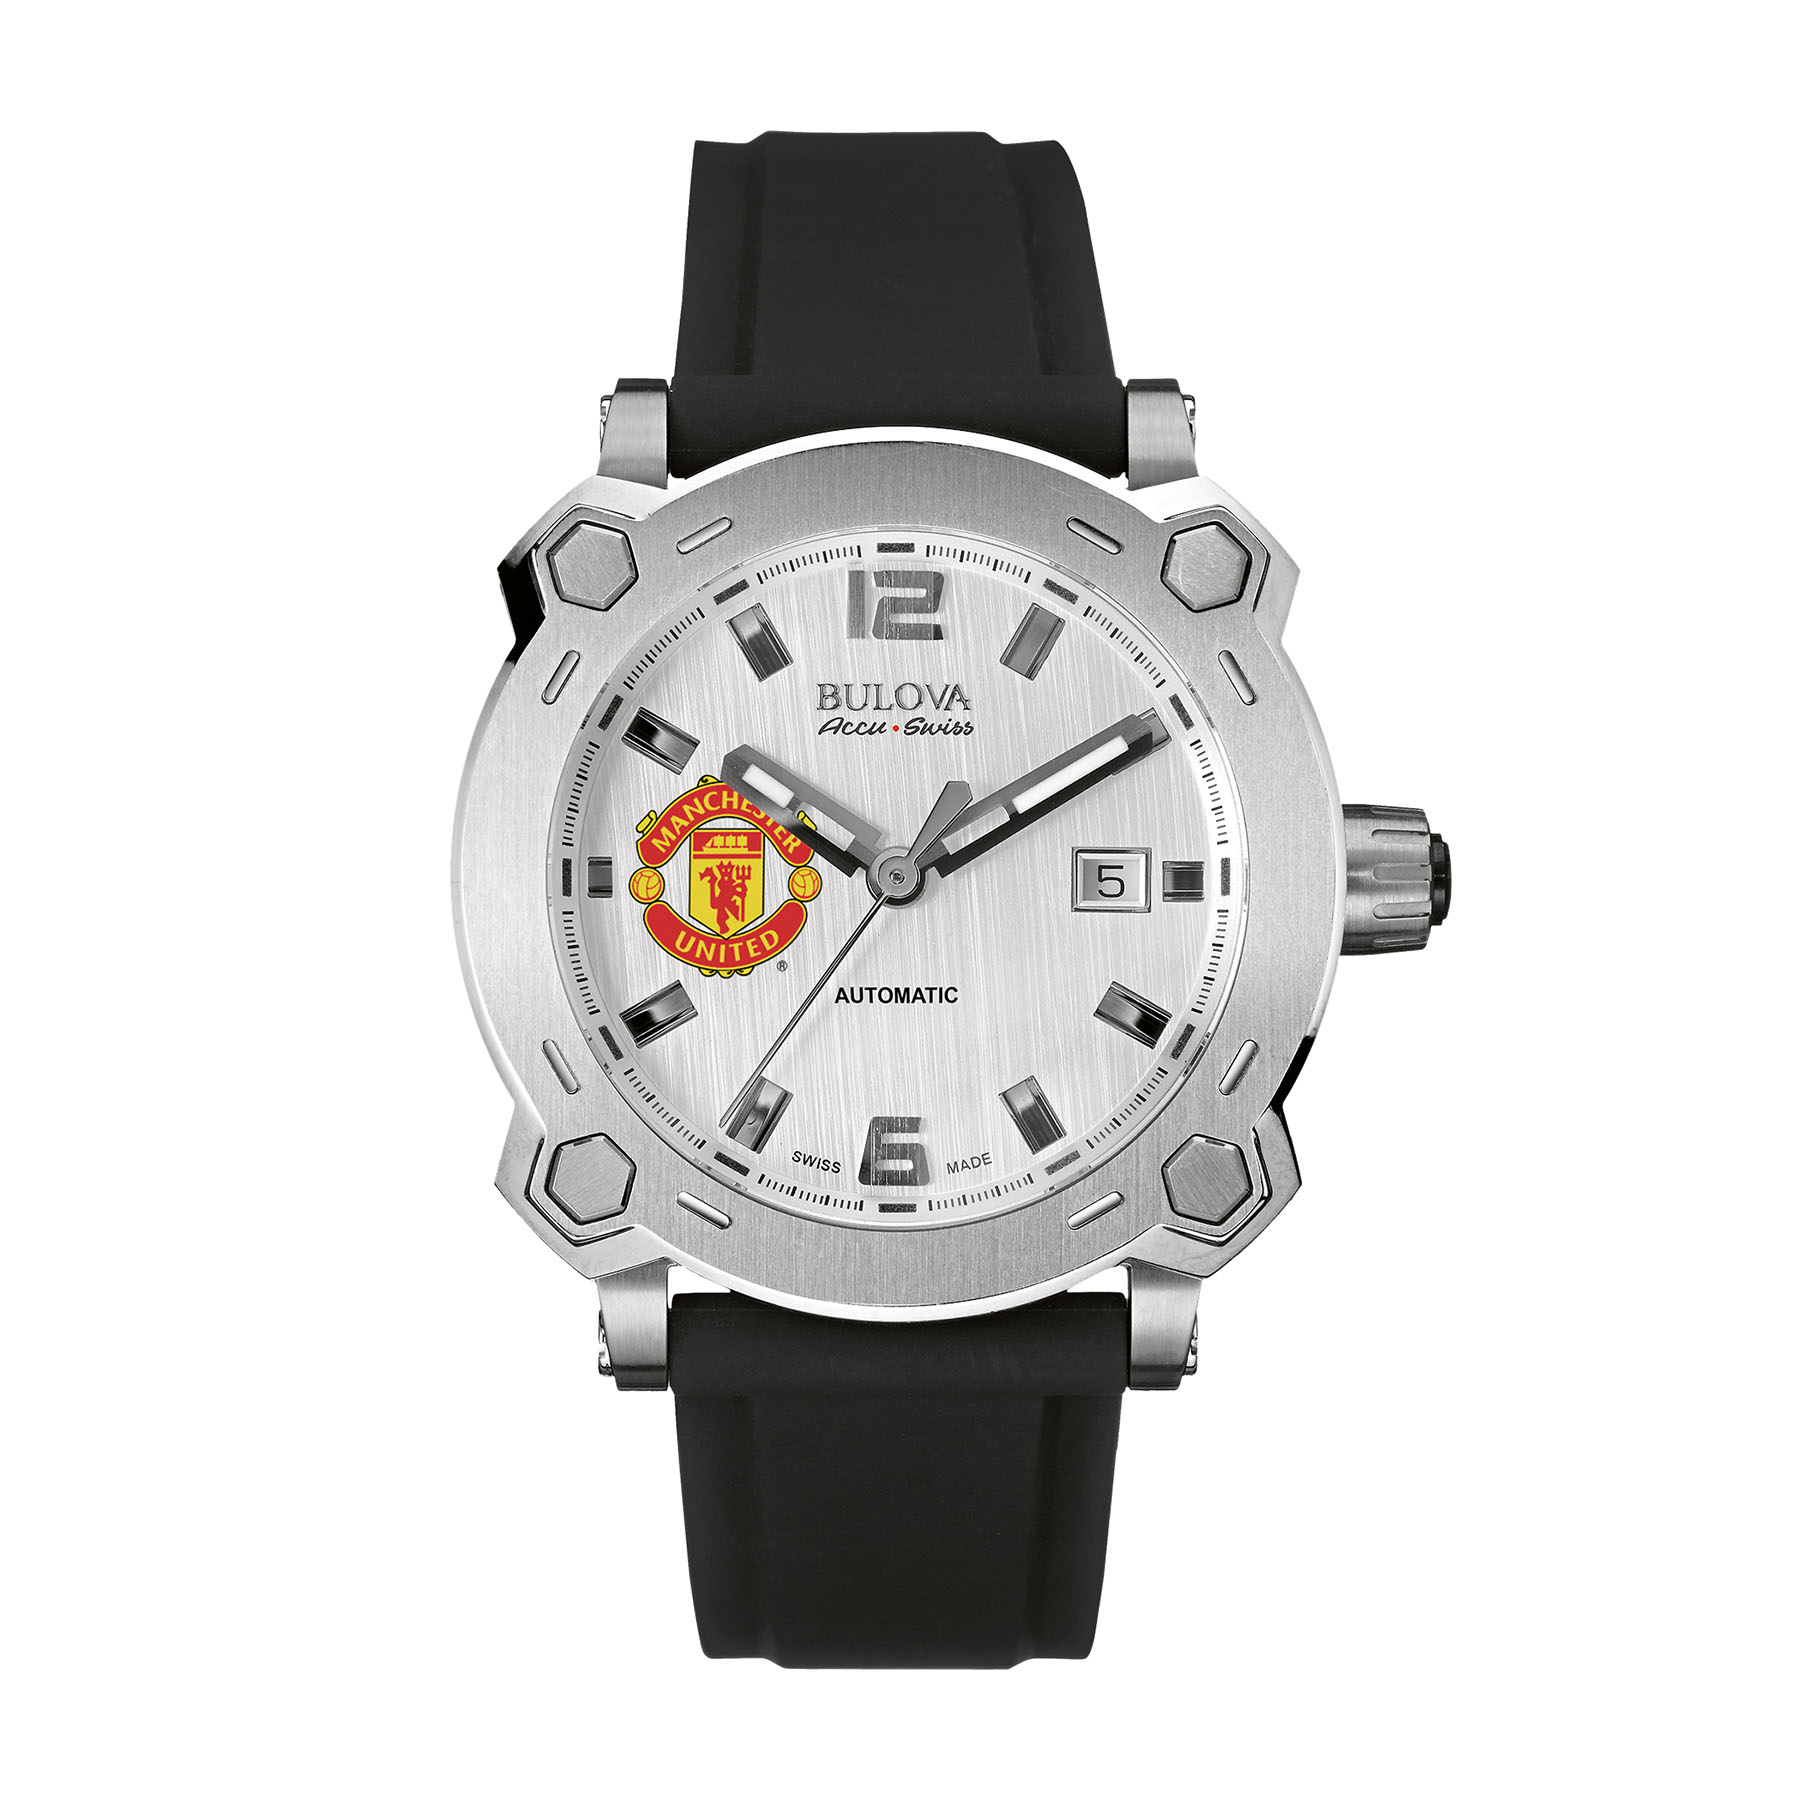 Manchester United Bulova Accu.Swiss Stainless Steel Watch - Sliver Dial with Crest